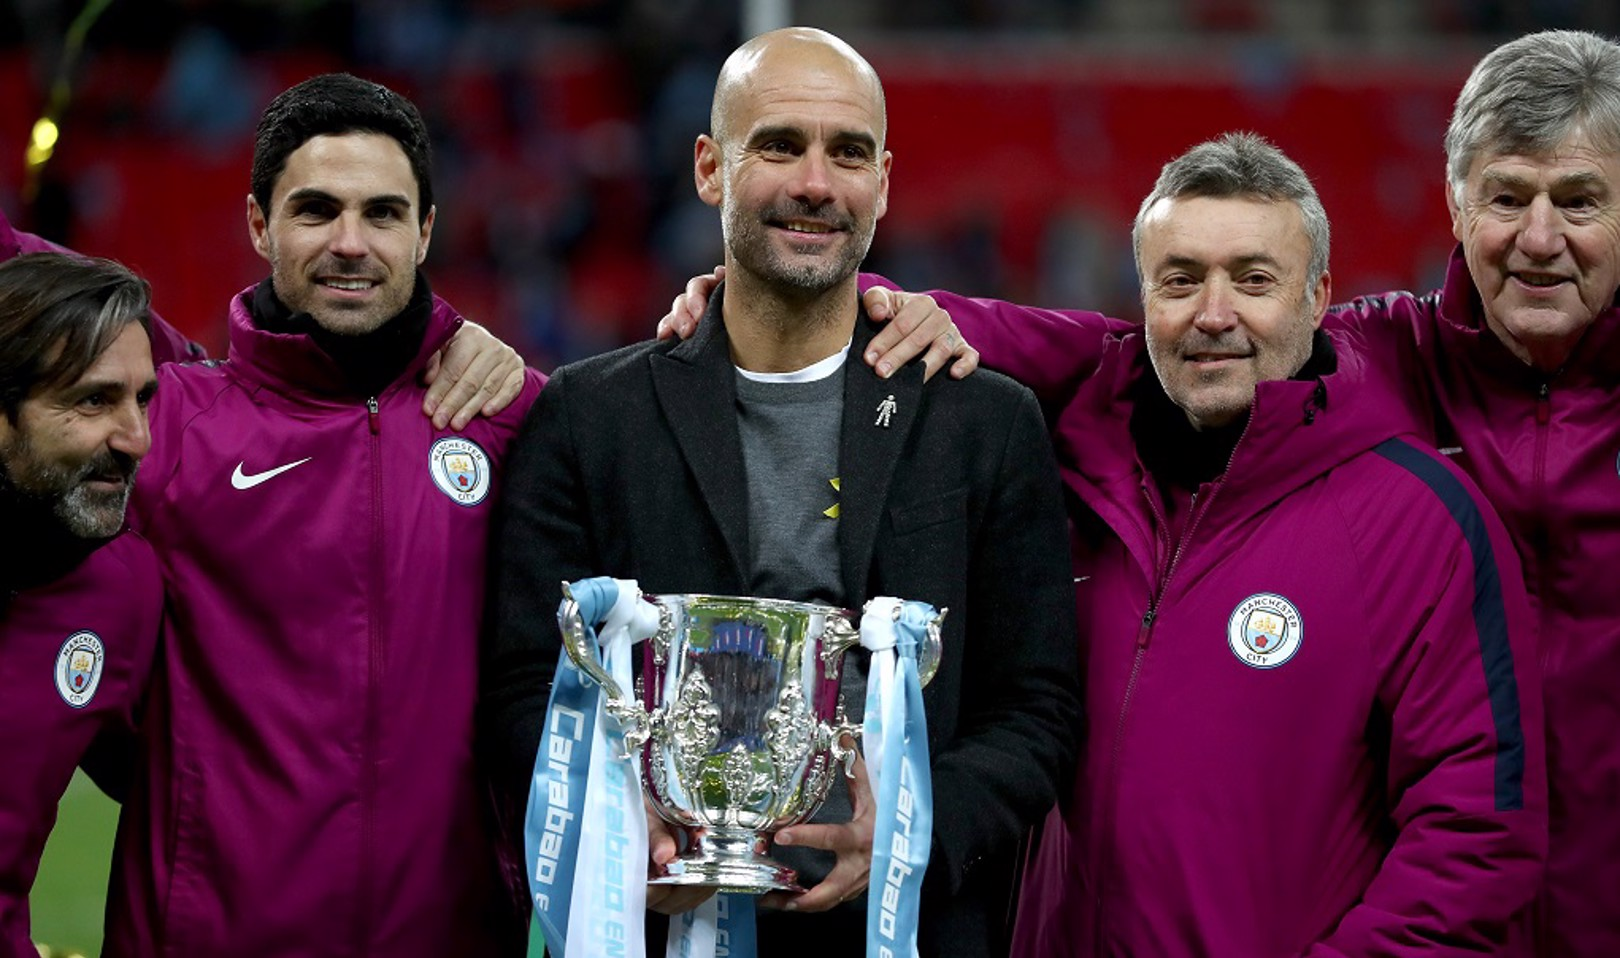 UP FOR THE CUP: City are looking to win the Carabao Cup for the fourth time in six seasons